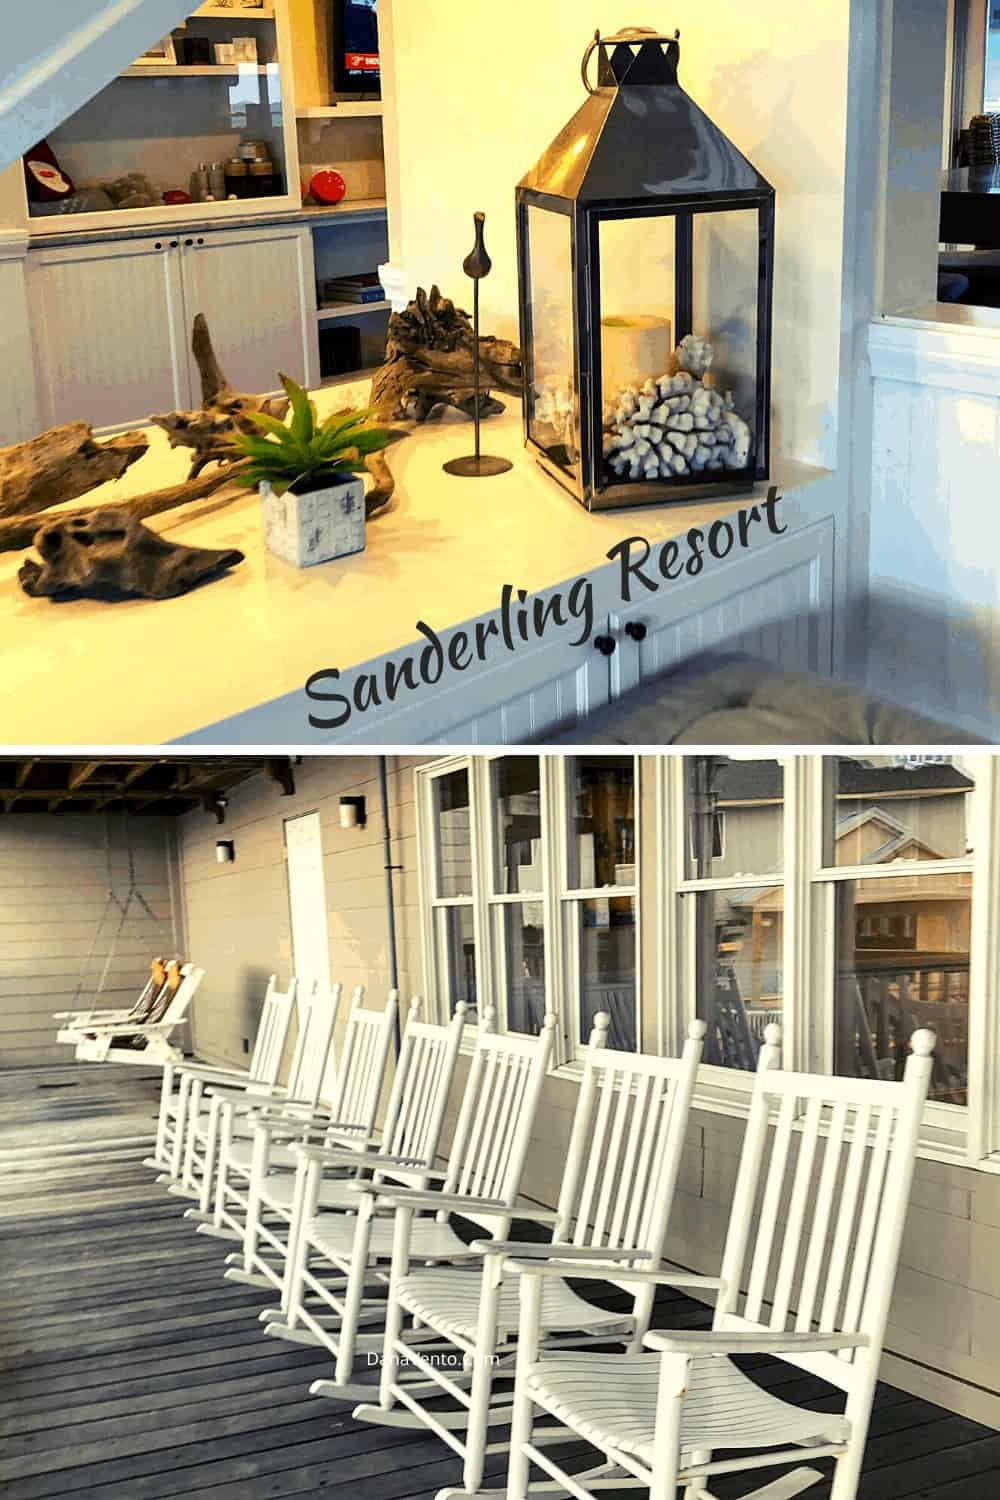 Inside Sanderling resort reception